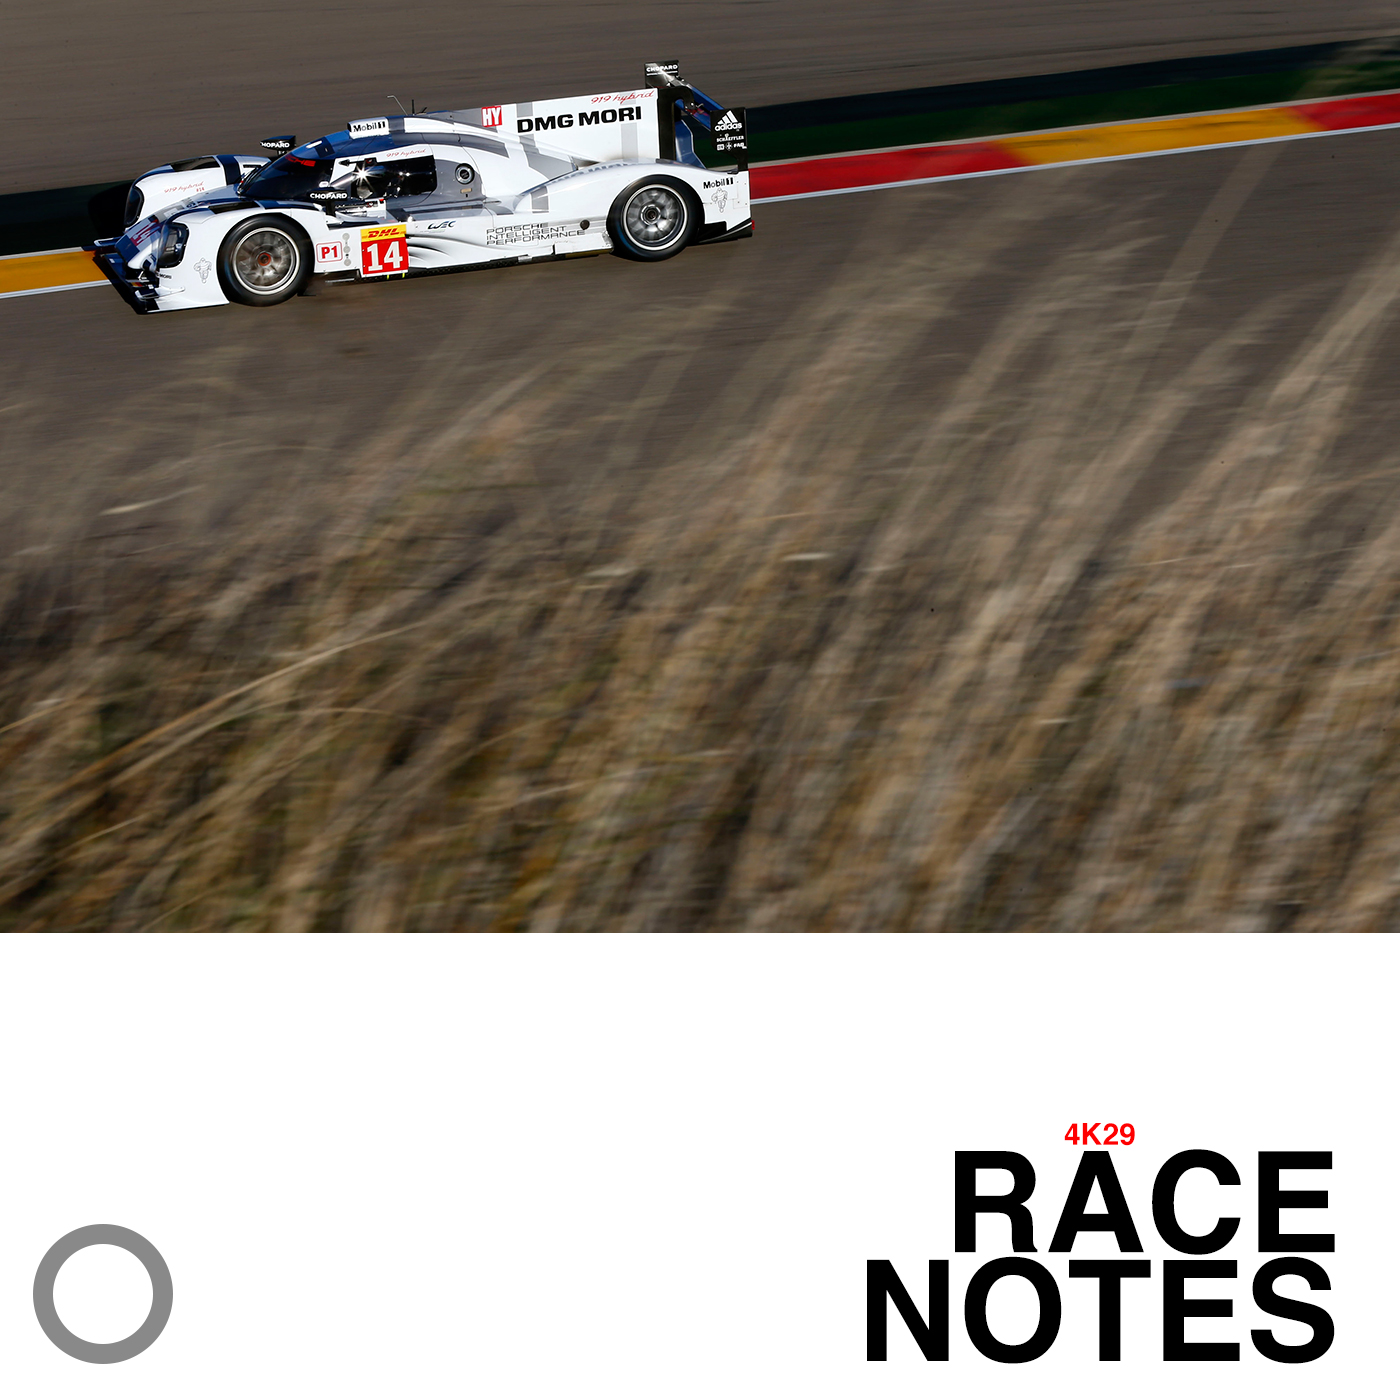 RACE NOTES 4K29 MOBILE640